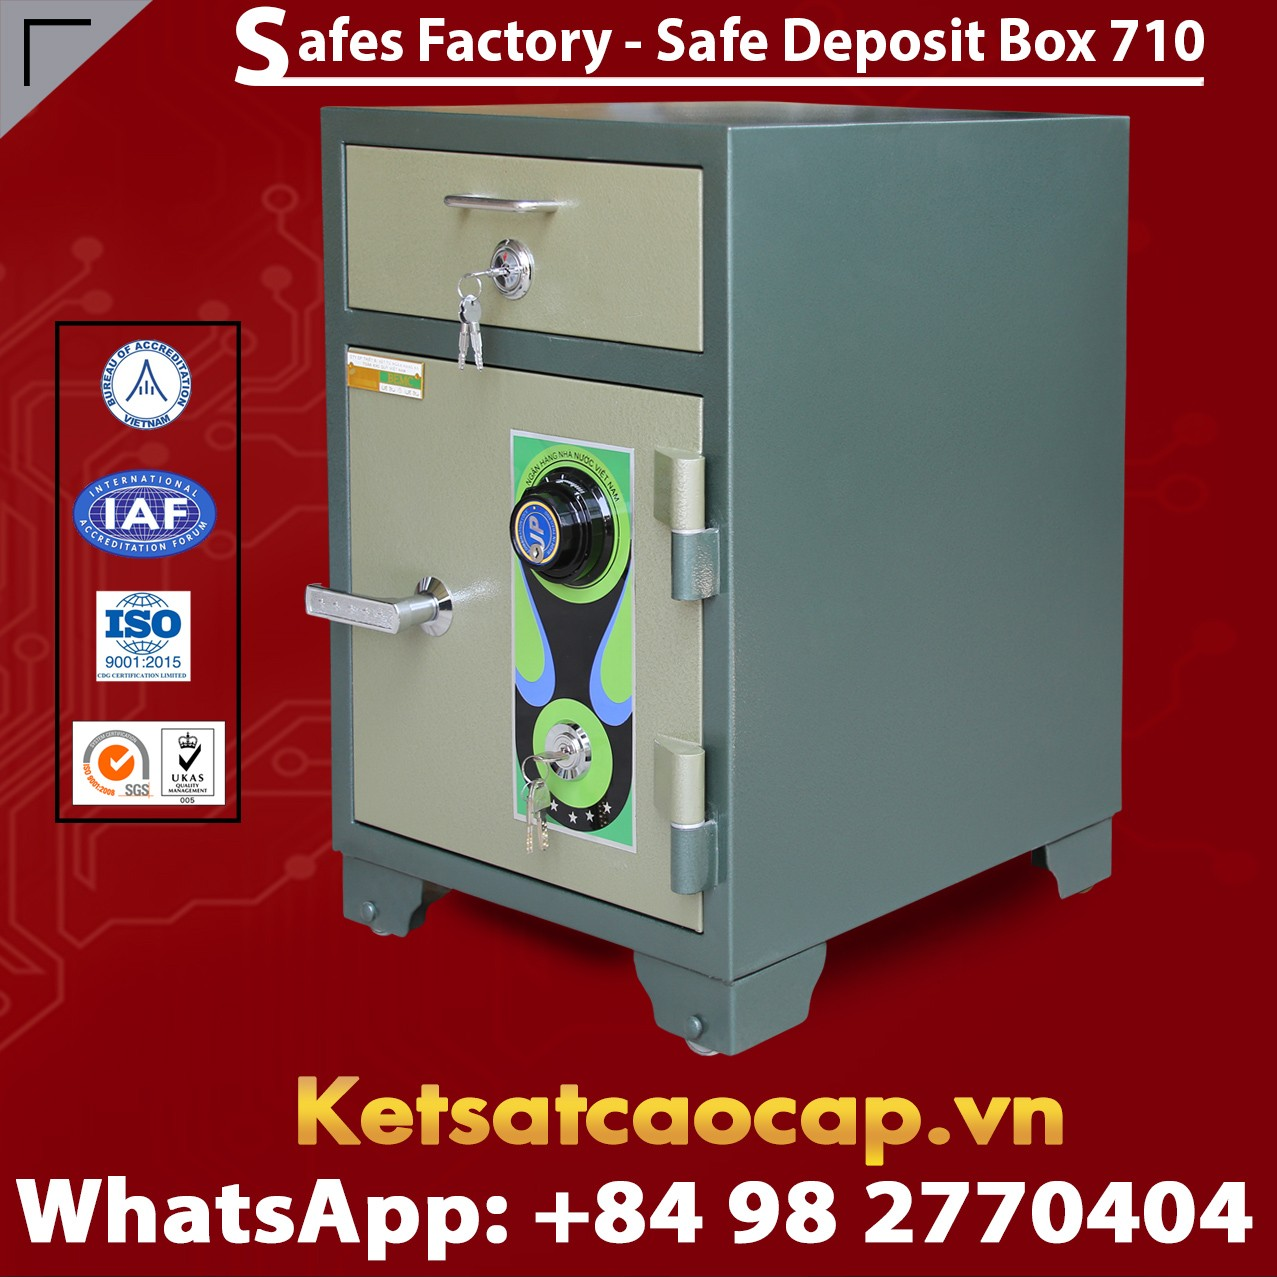 Bank Safe LX710 DK High-quality Cash Drop Box Mechanical Lock System